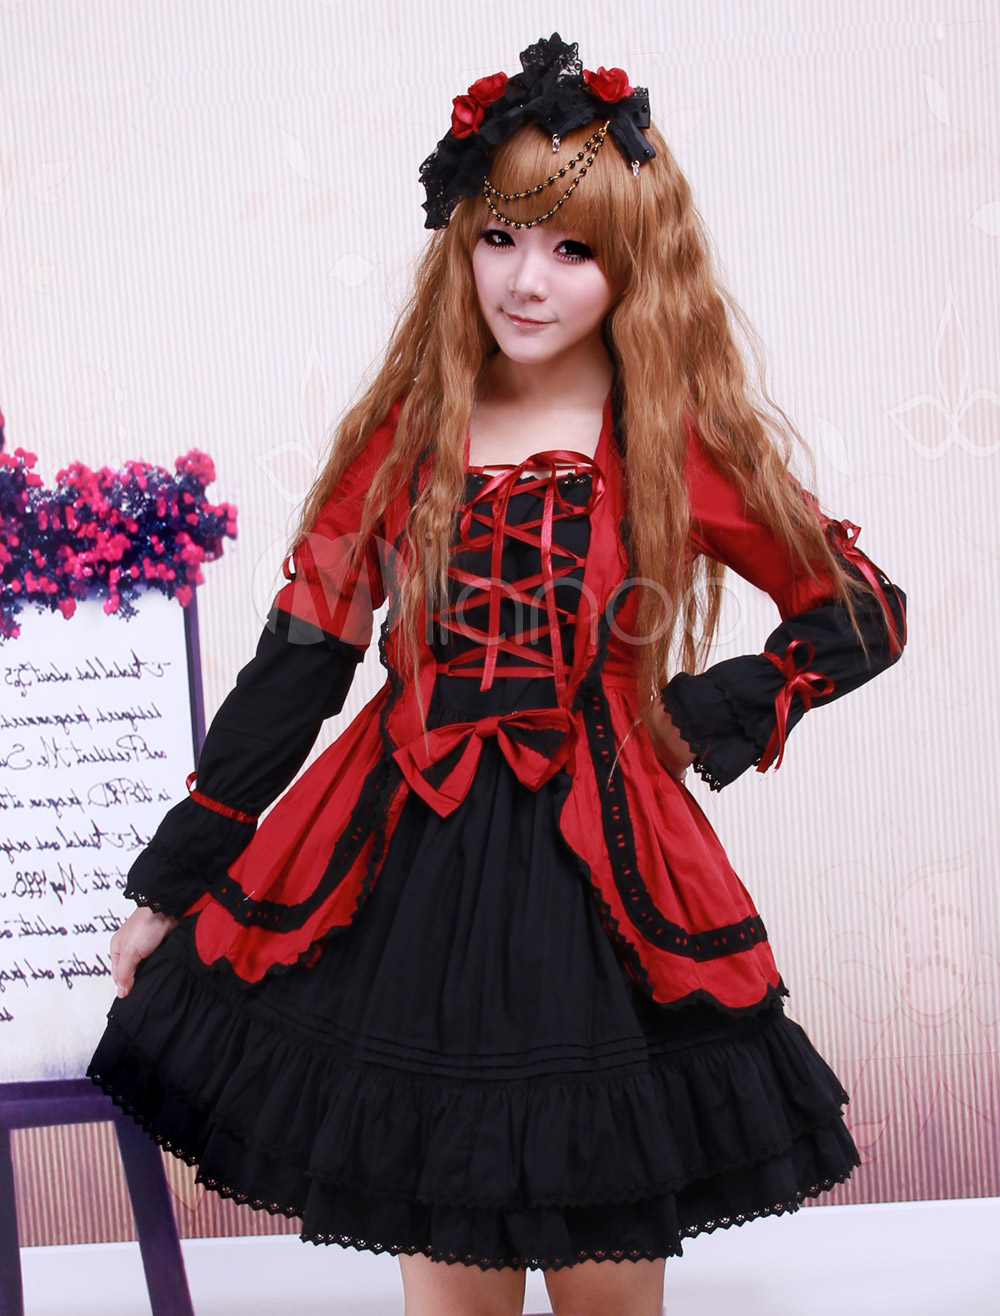 Gothic Lolita Dresses And Accessories